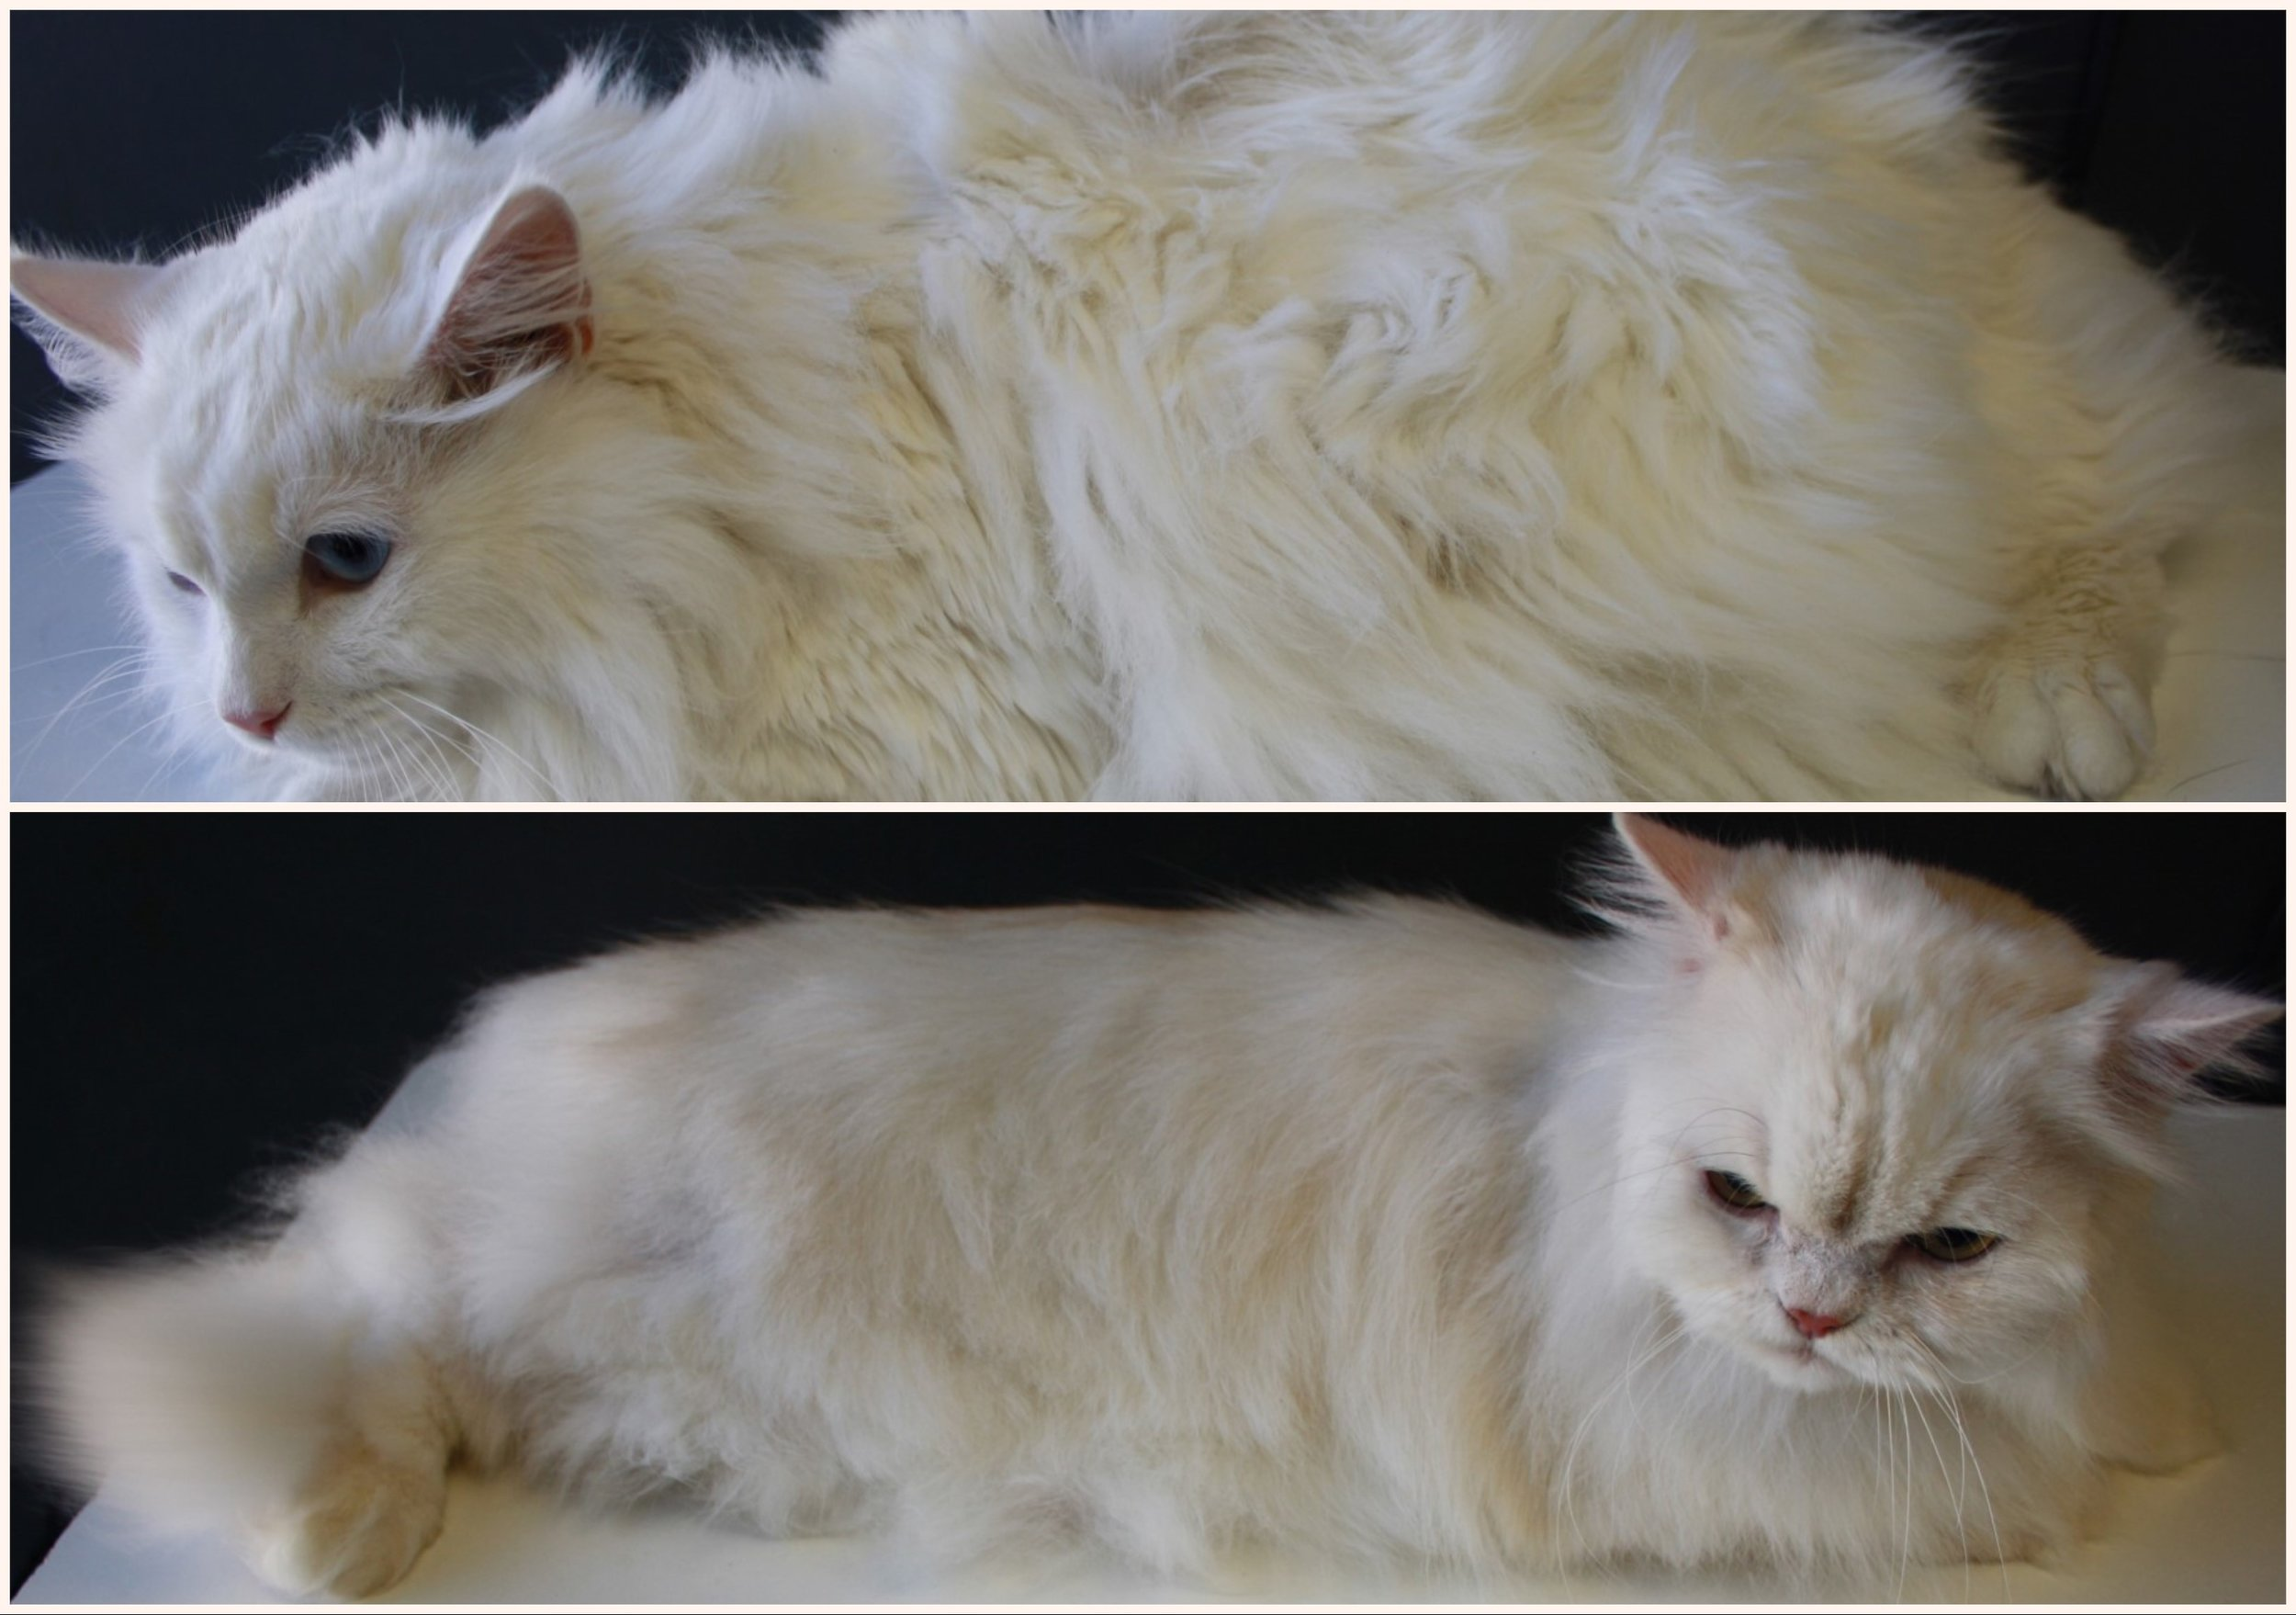 A Full Coat Groom and Deshed was just what this kitty needed.